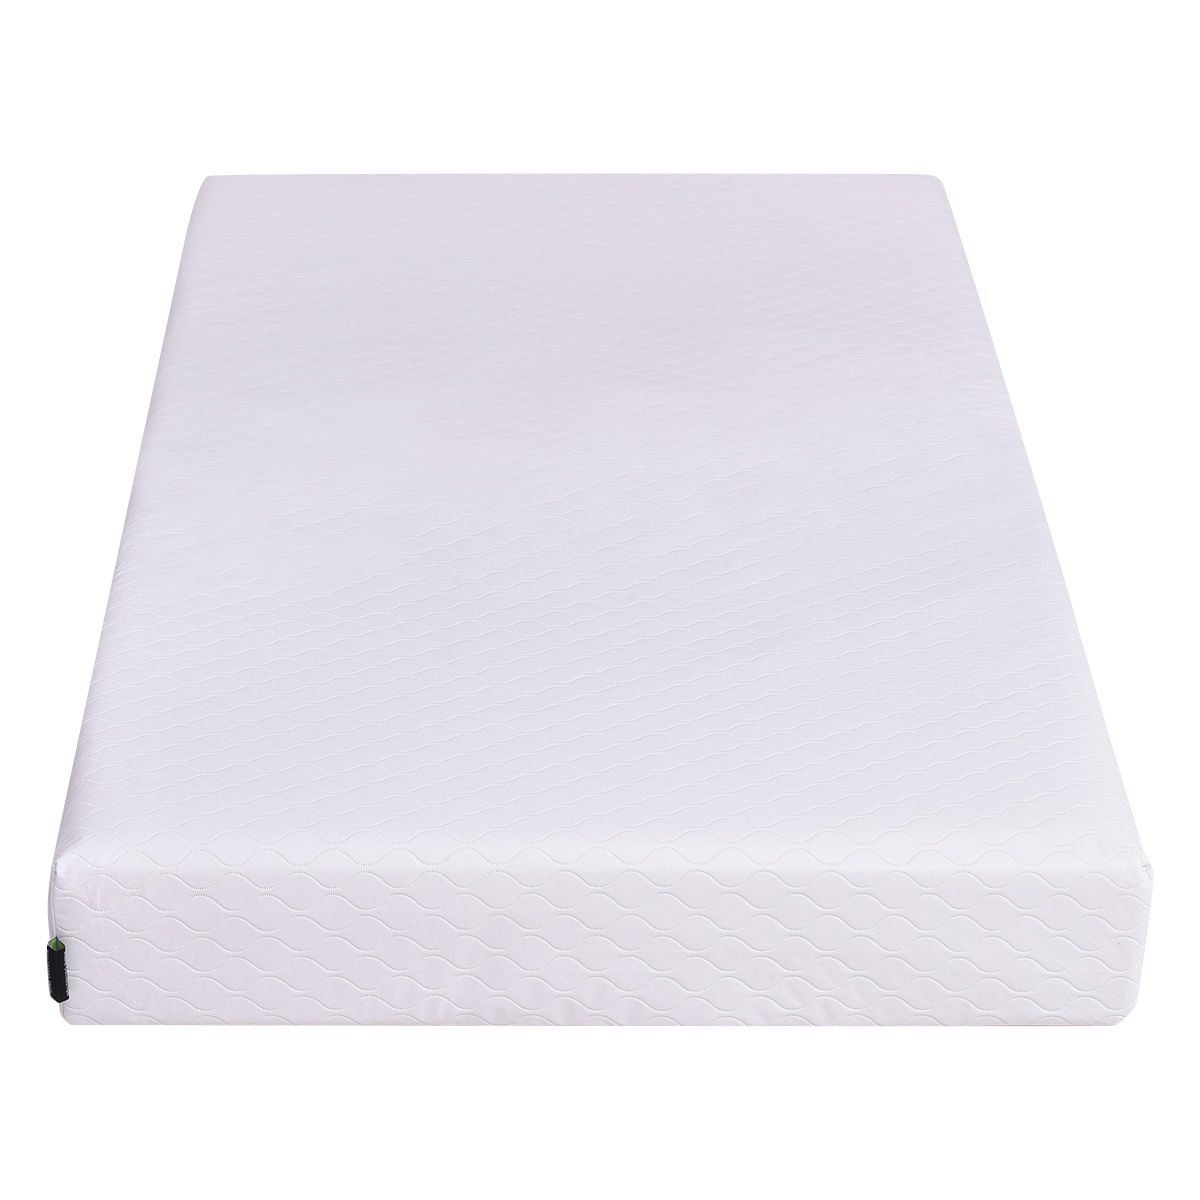 Crib mattress for babies - Giantex Memory Foam Baby Crib